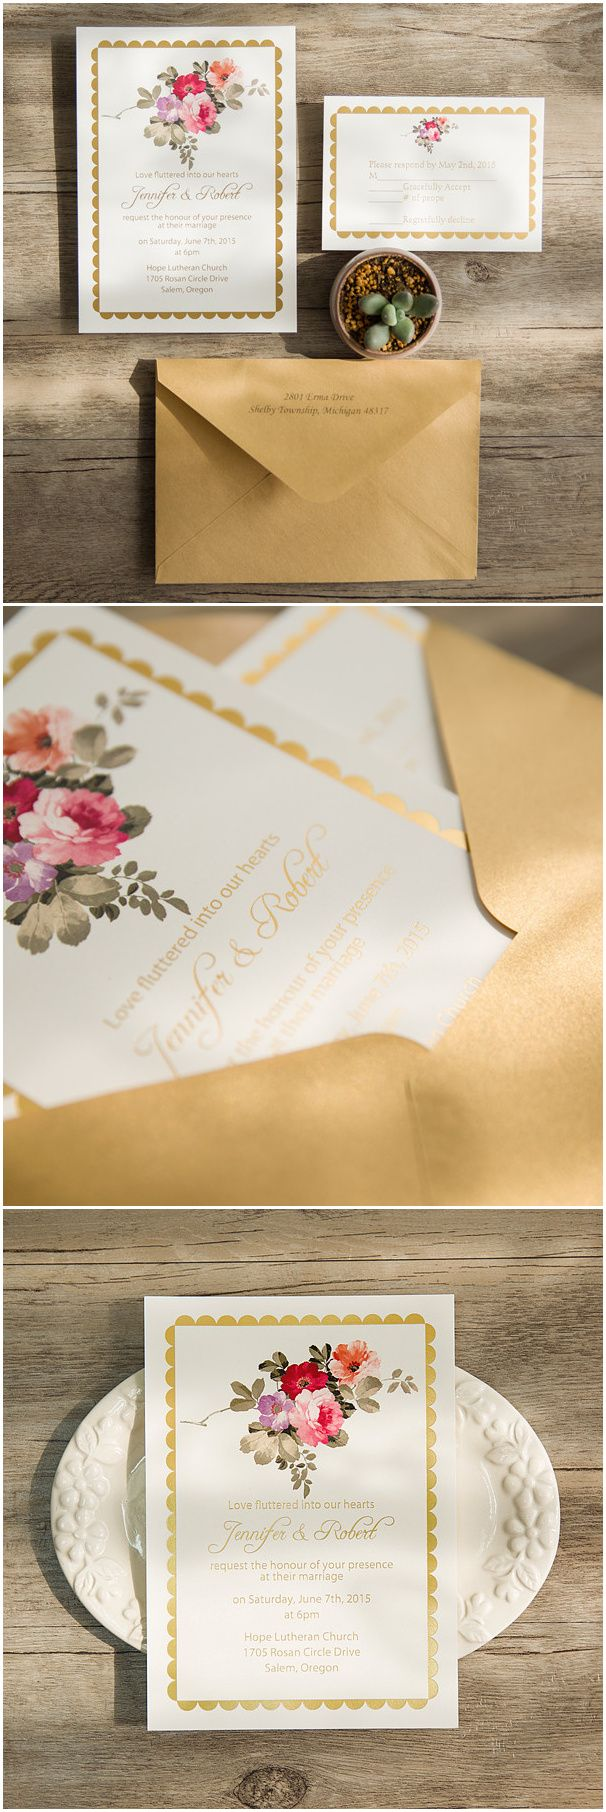 84 Best Gold Foil Wedding Invitations Images On Pinterest